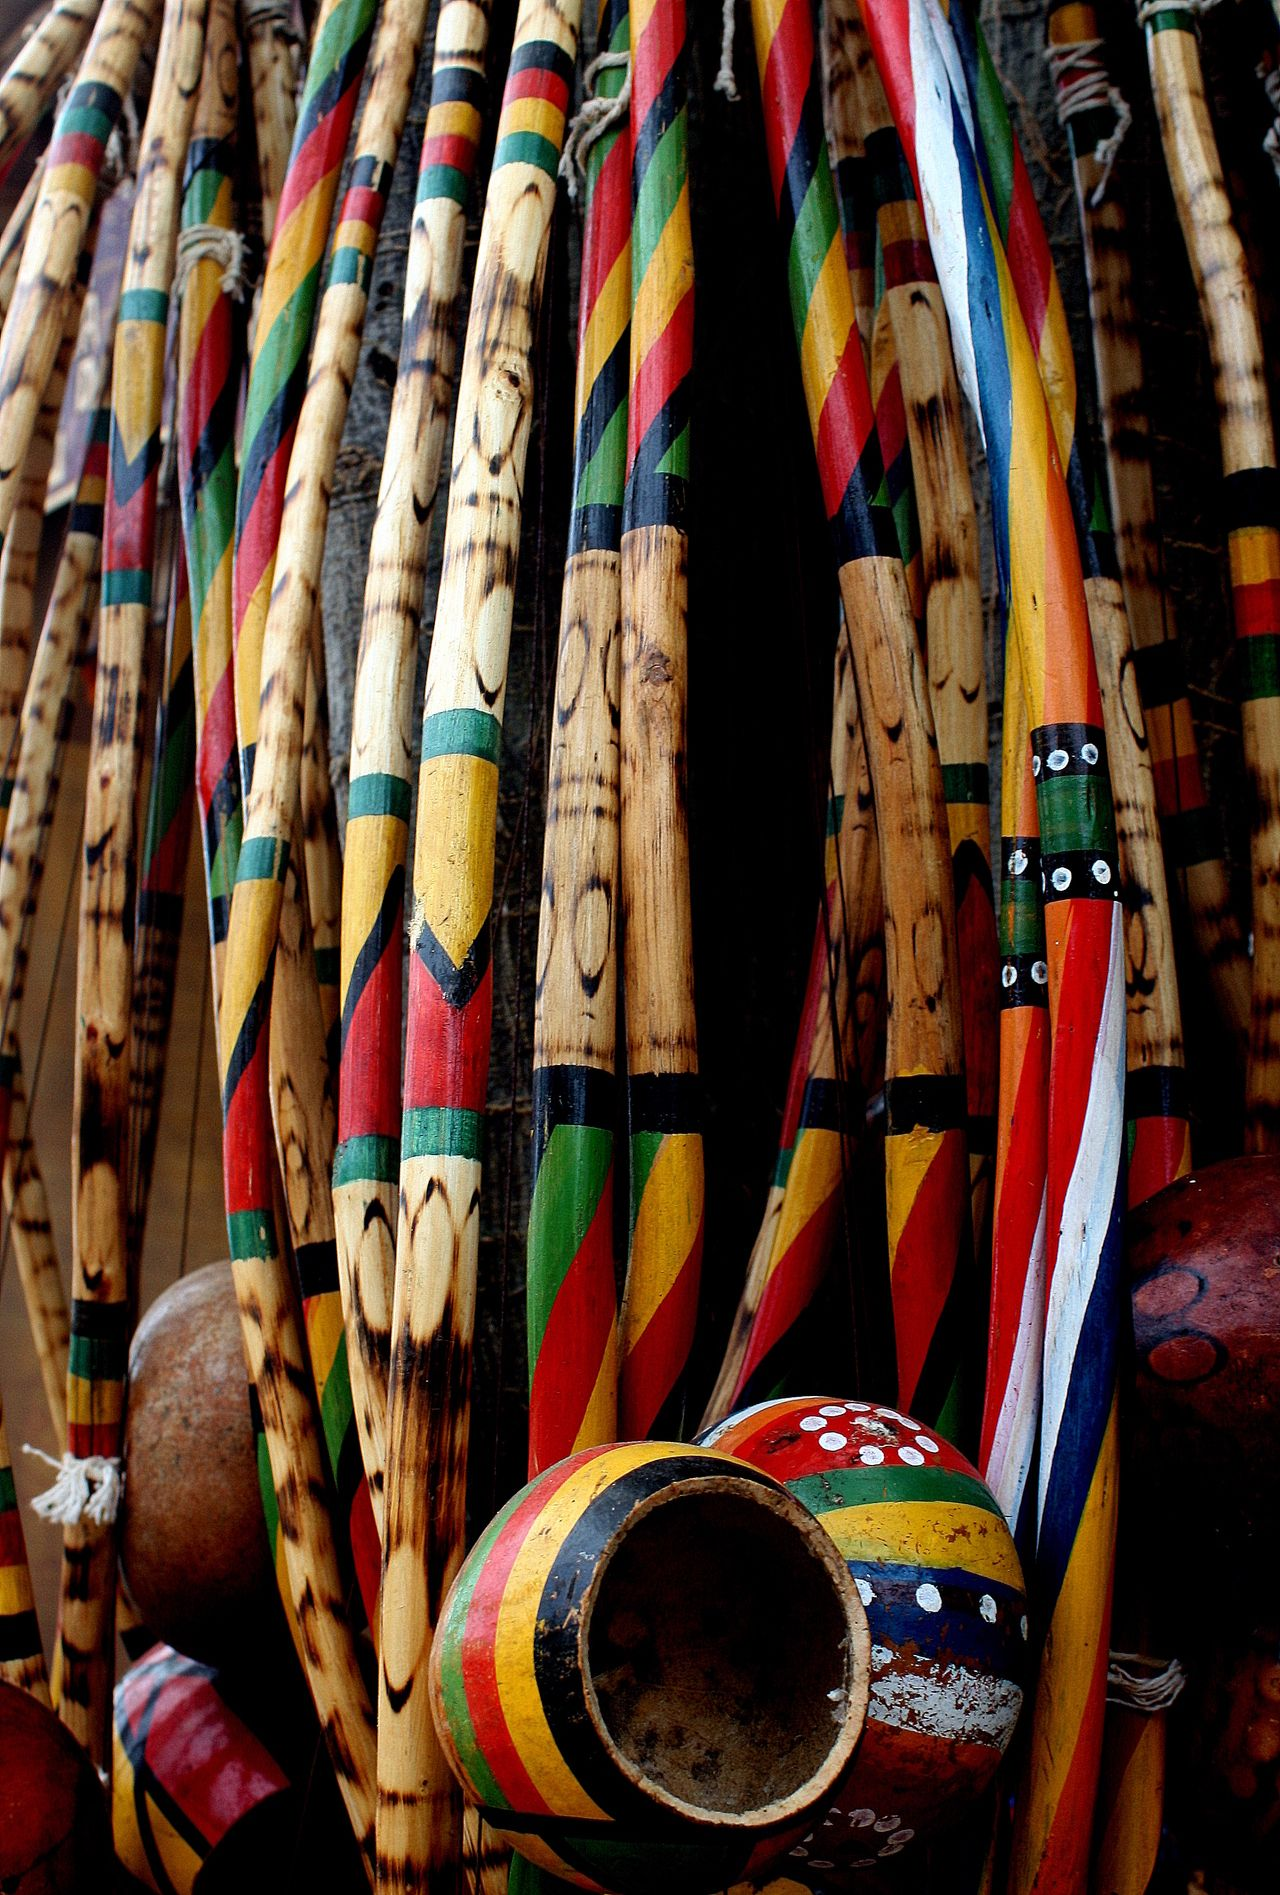 Colorful berimbau. The berimbau is a single-string percussion instrument, a musical bow, from Brazil. The berimbau's origins are not entirely clear, but there is not much doubt about its African origin, as no Indigenous Brazilian or European people use musical bows, and very similar instruments are played in the southern parts of Africa.